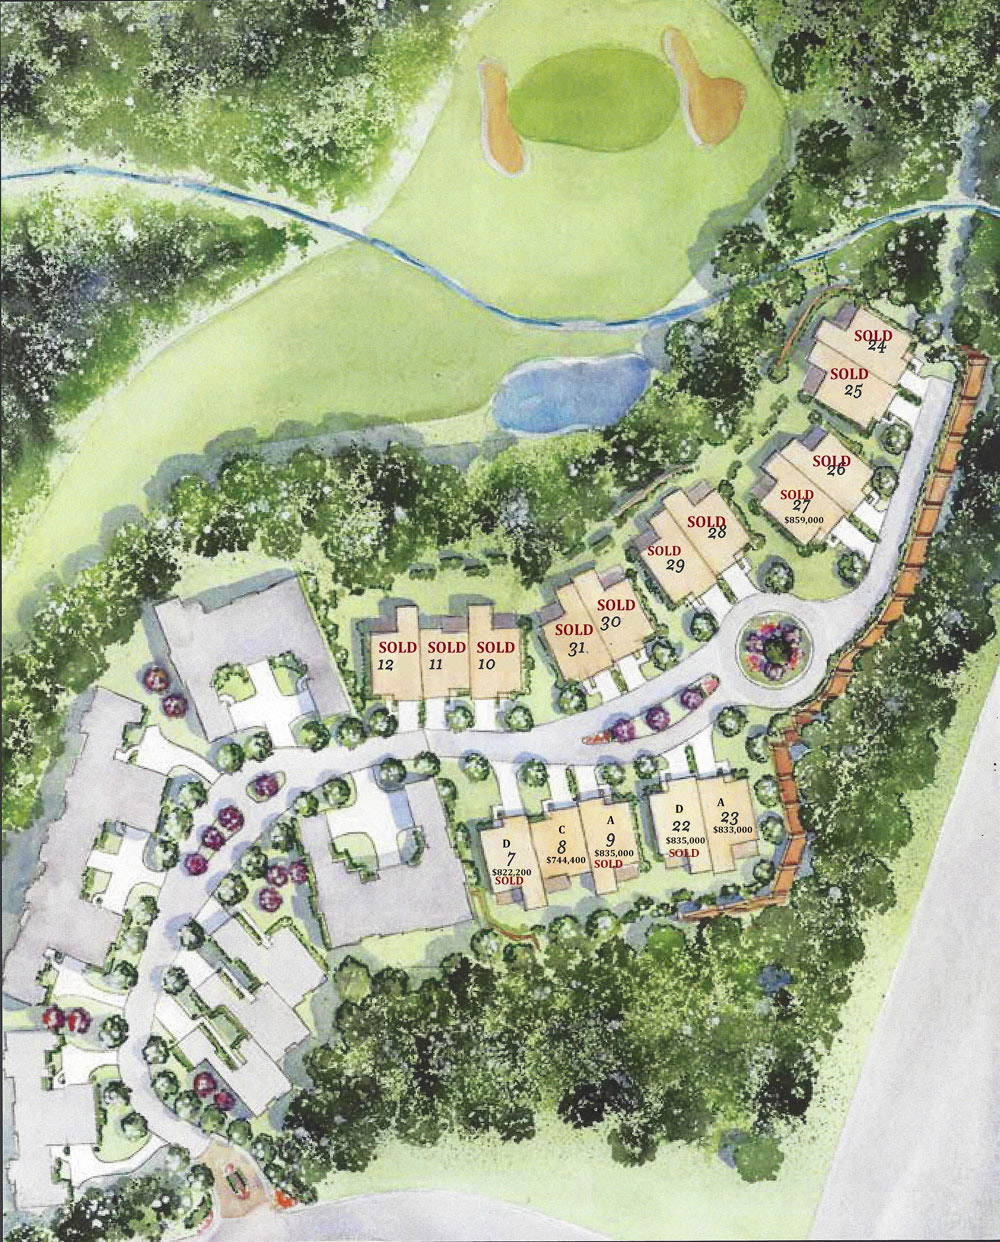 Balmoral available homes site map